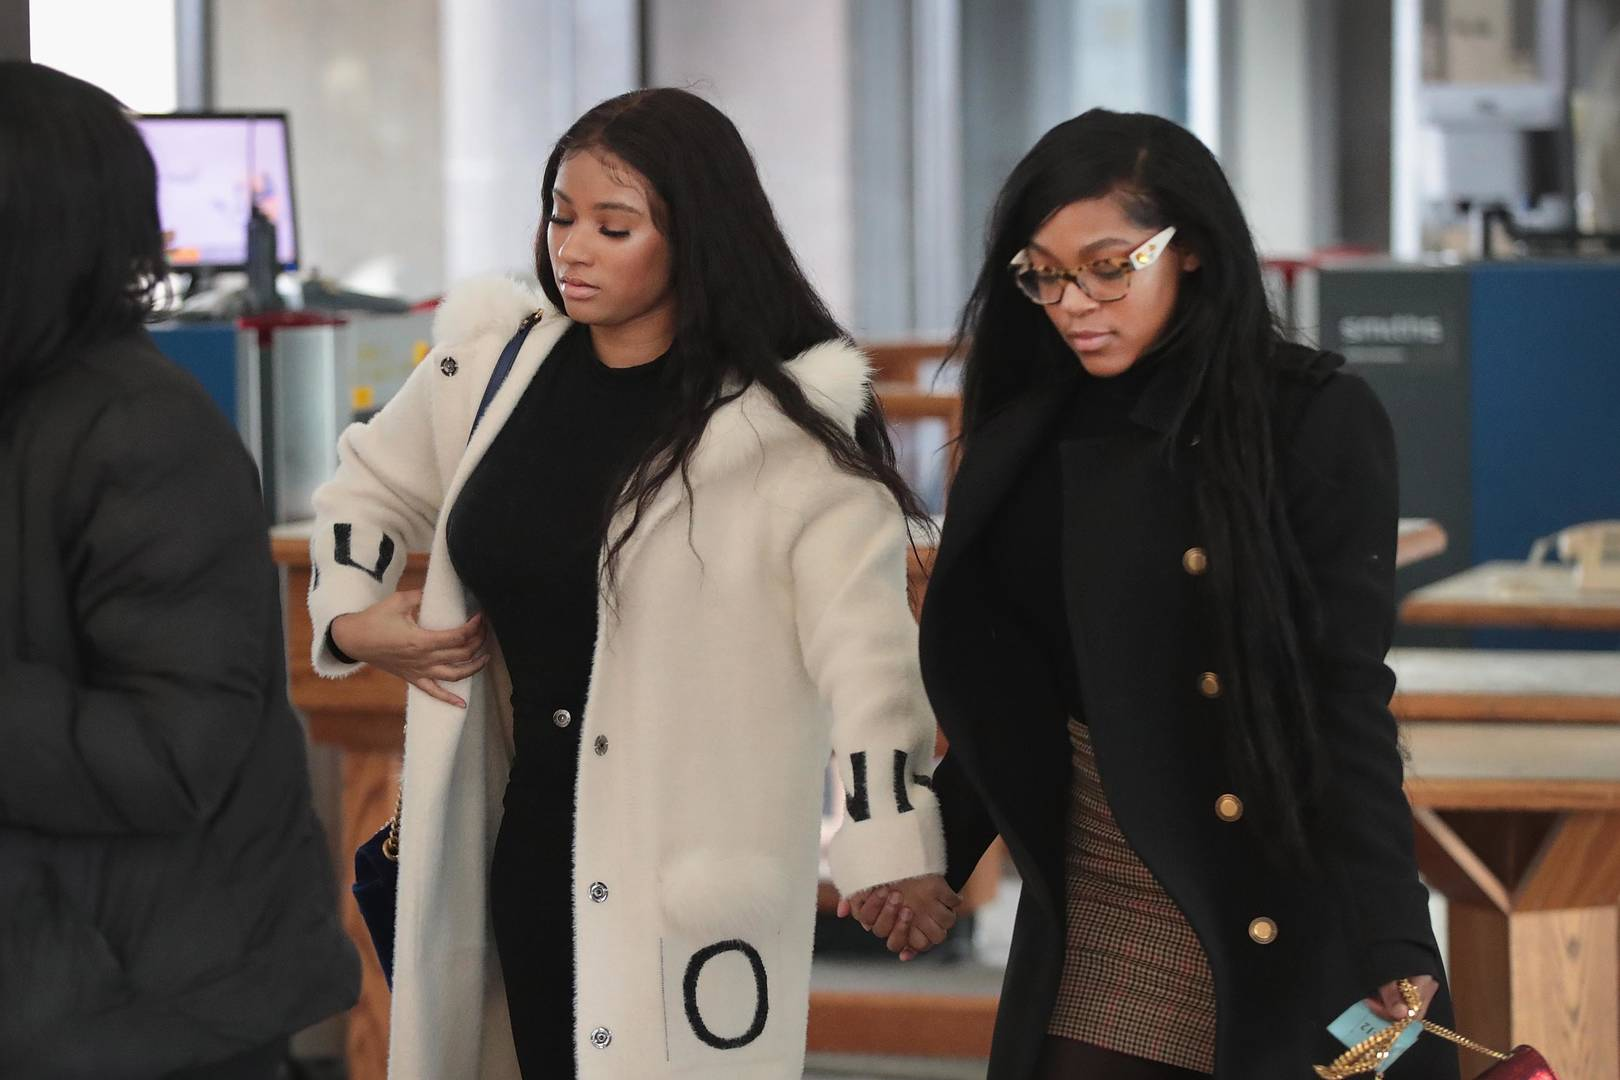 R Kelly's ex-girlfriends in a fight shared on Instagram